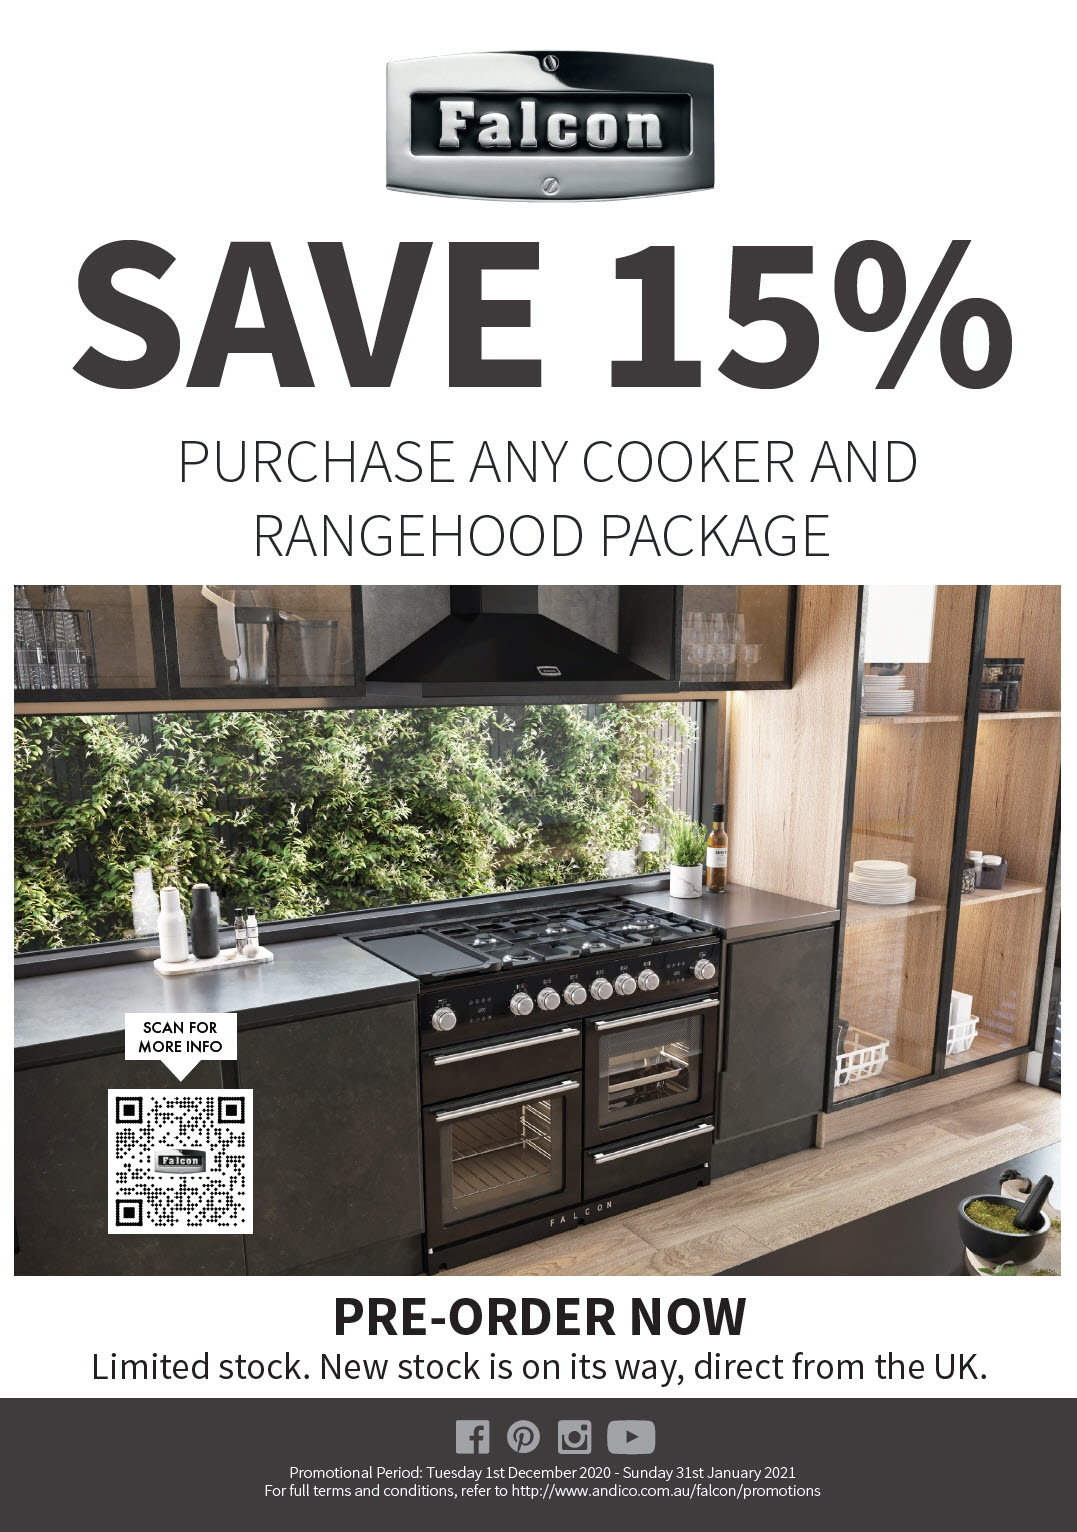 Falcon Save 15% Of any Falcon Rangehood & Cooker Package